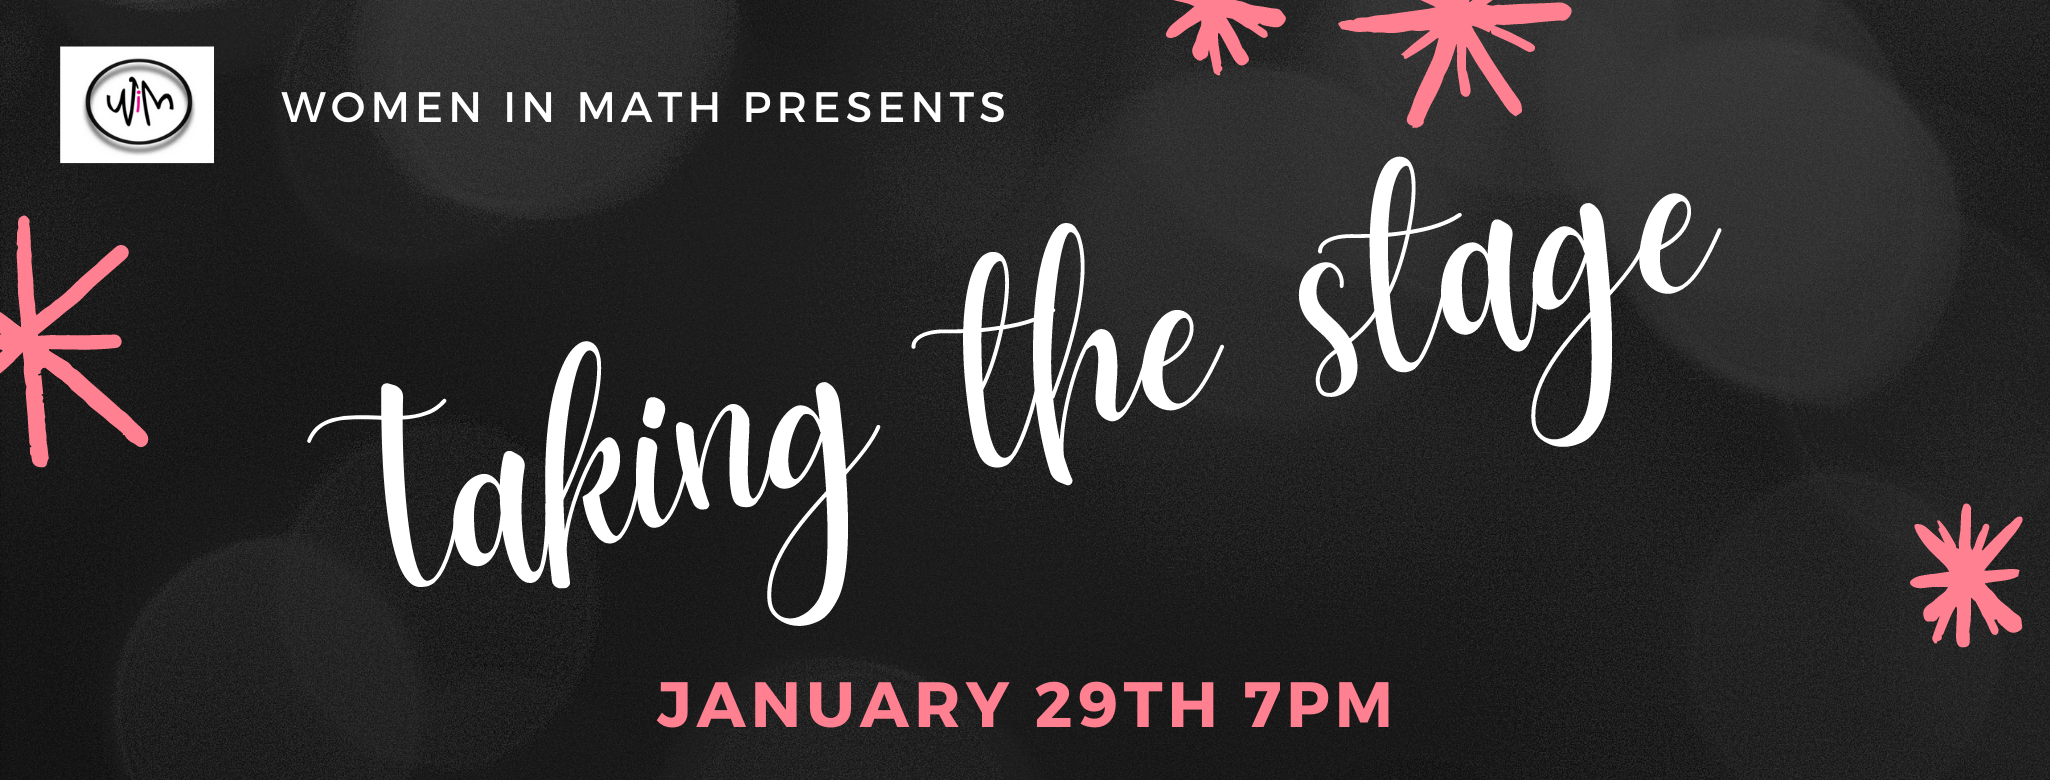 Women in Math Presents: Taking the Stage - January 29 at 7pm